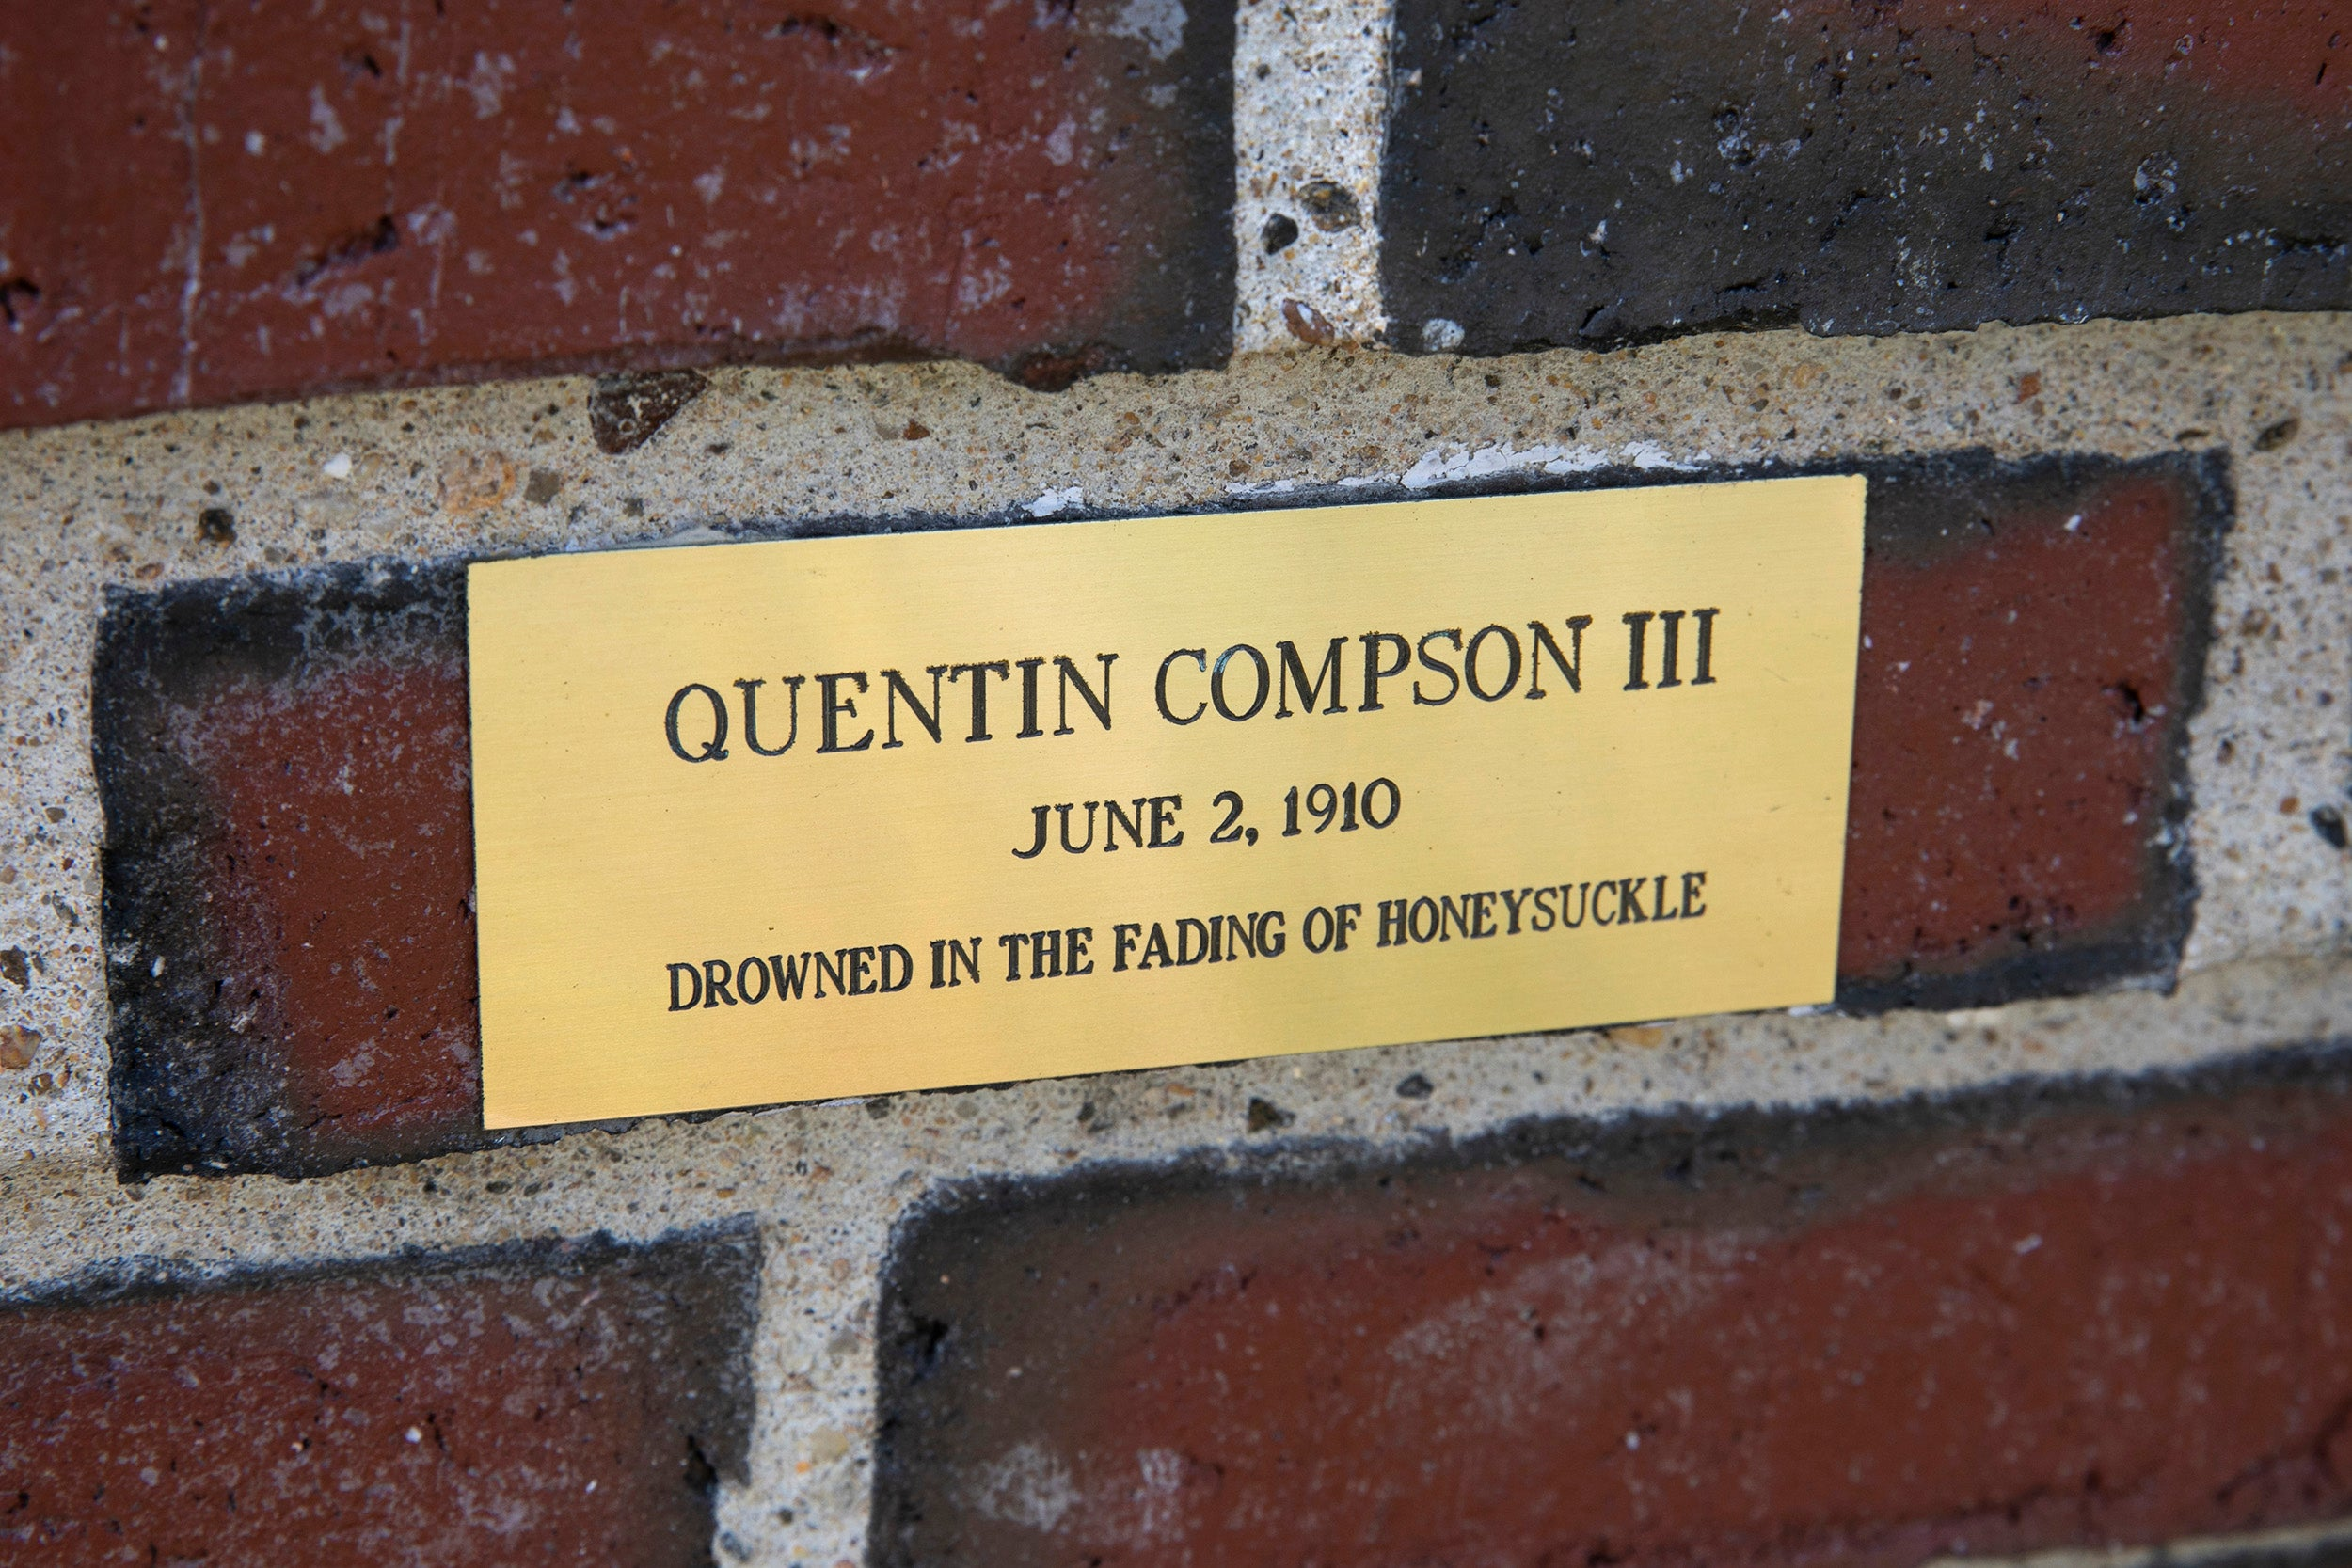 Plaque on a brick wall